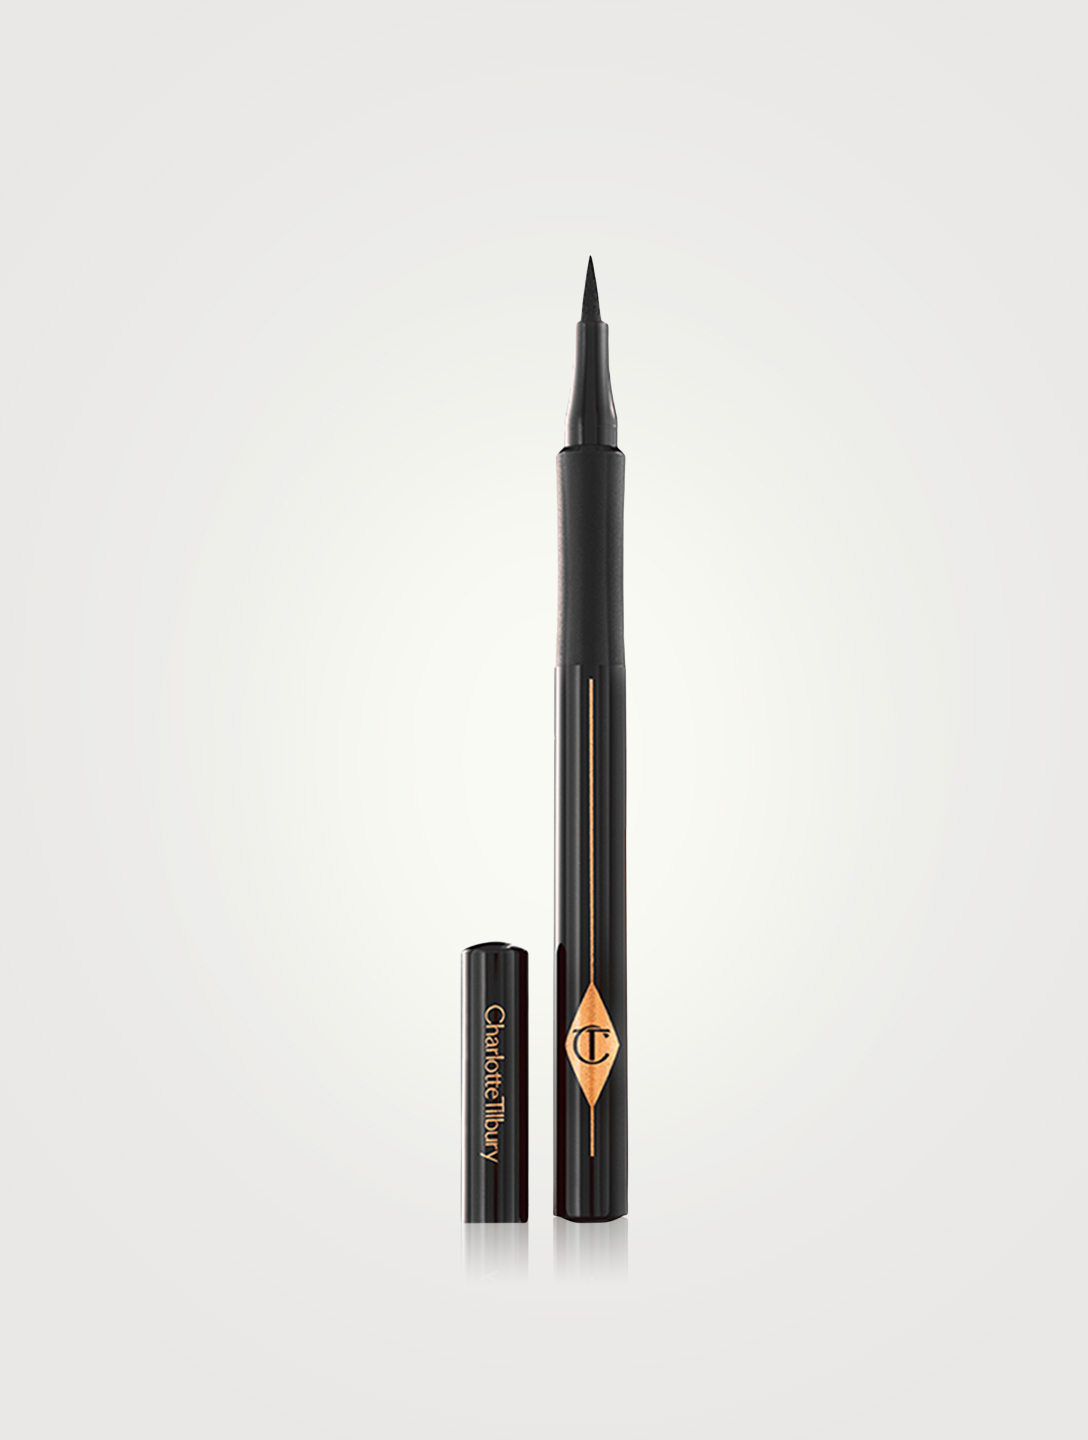 CHARLOTTE TILBURY The Feline Flick Eyeliner Pen Beauty Black